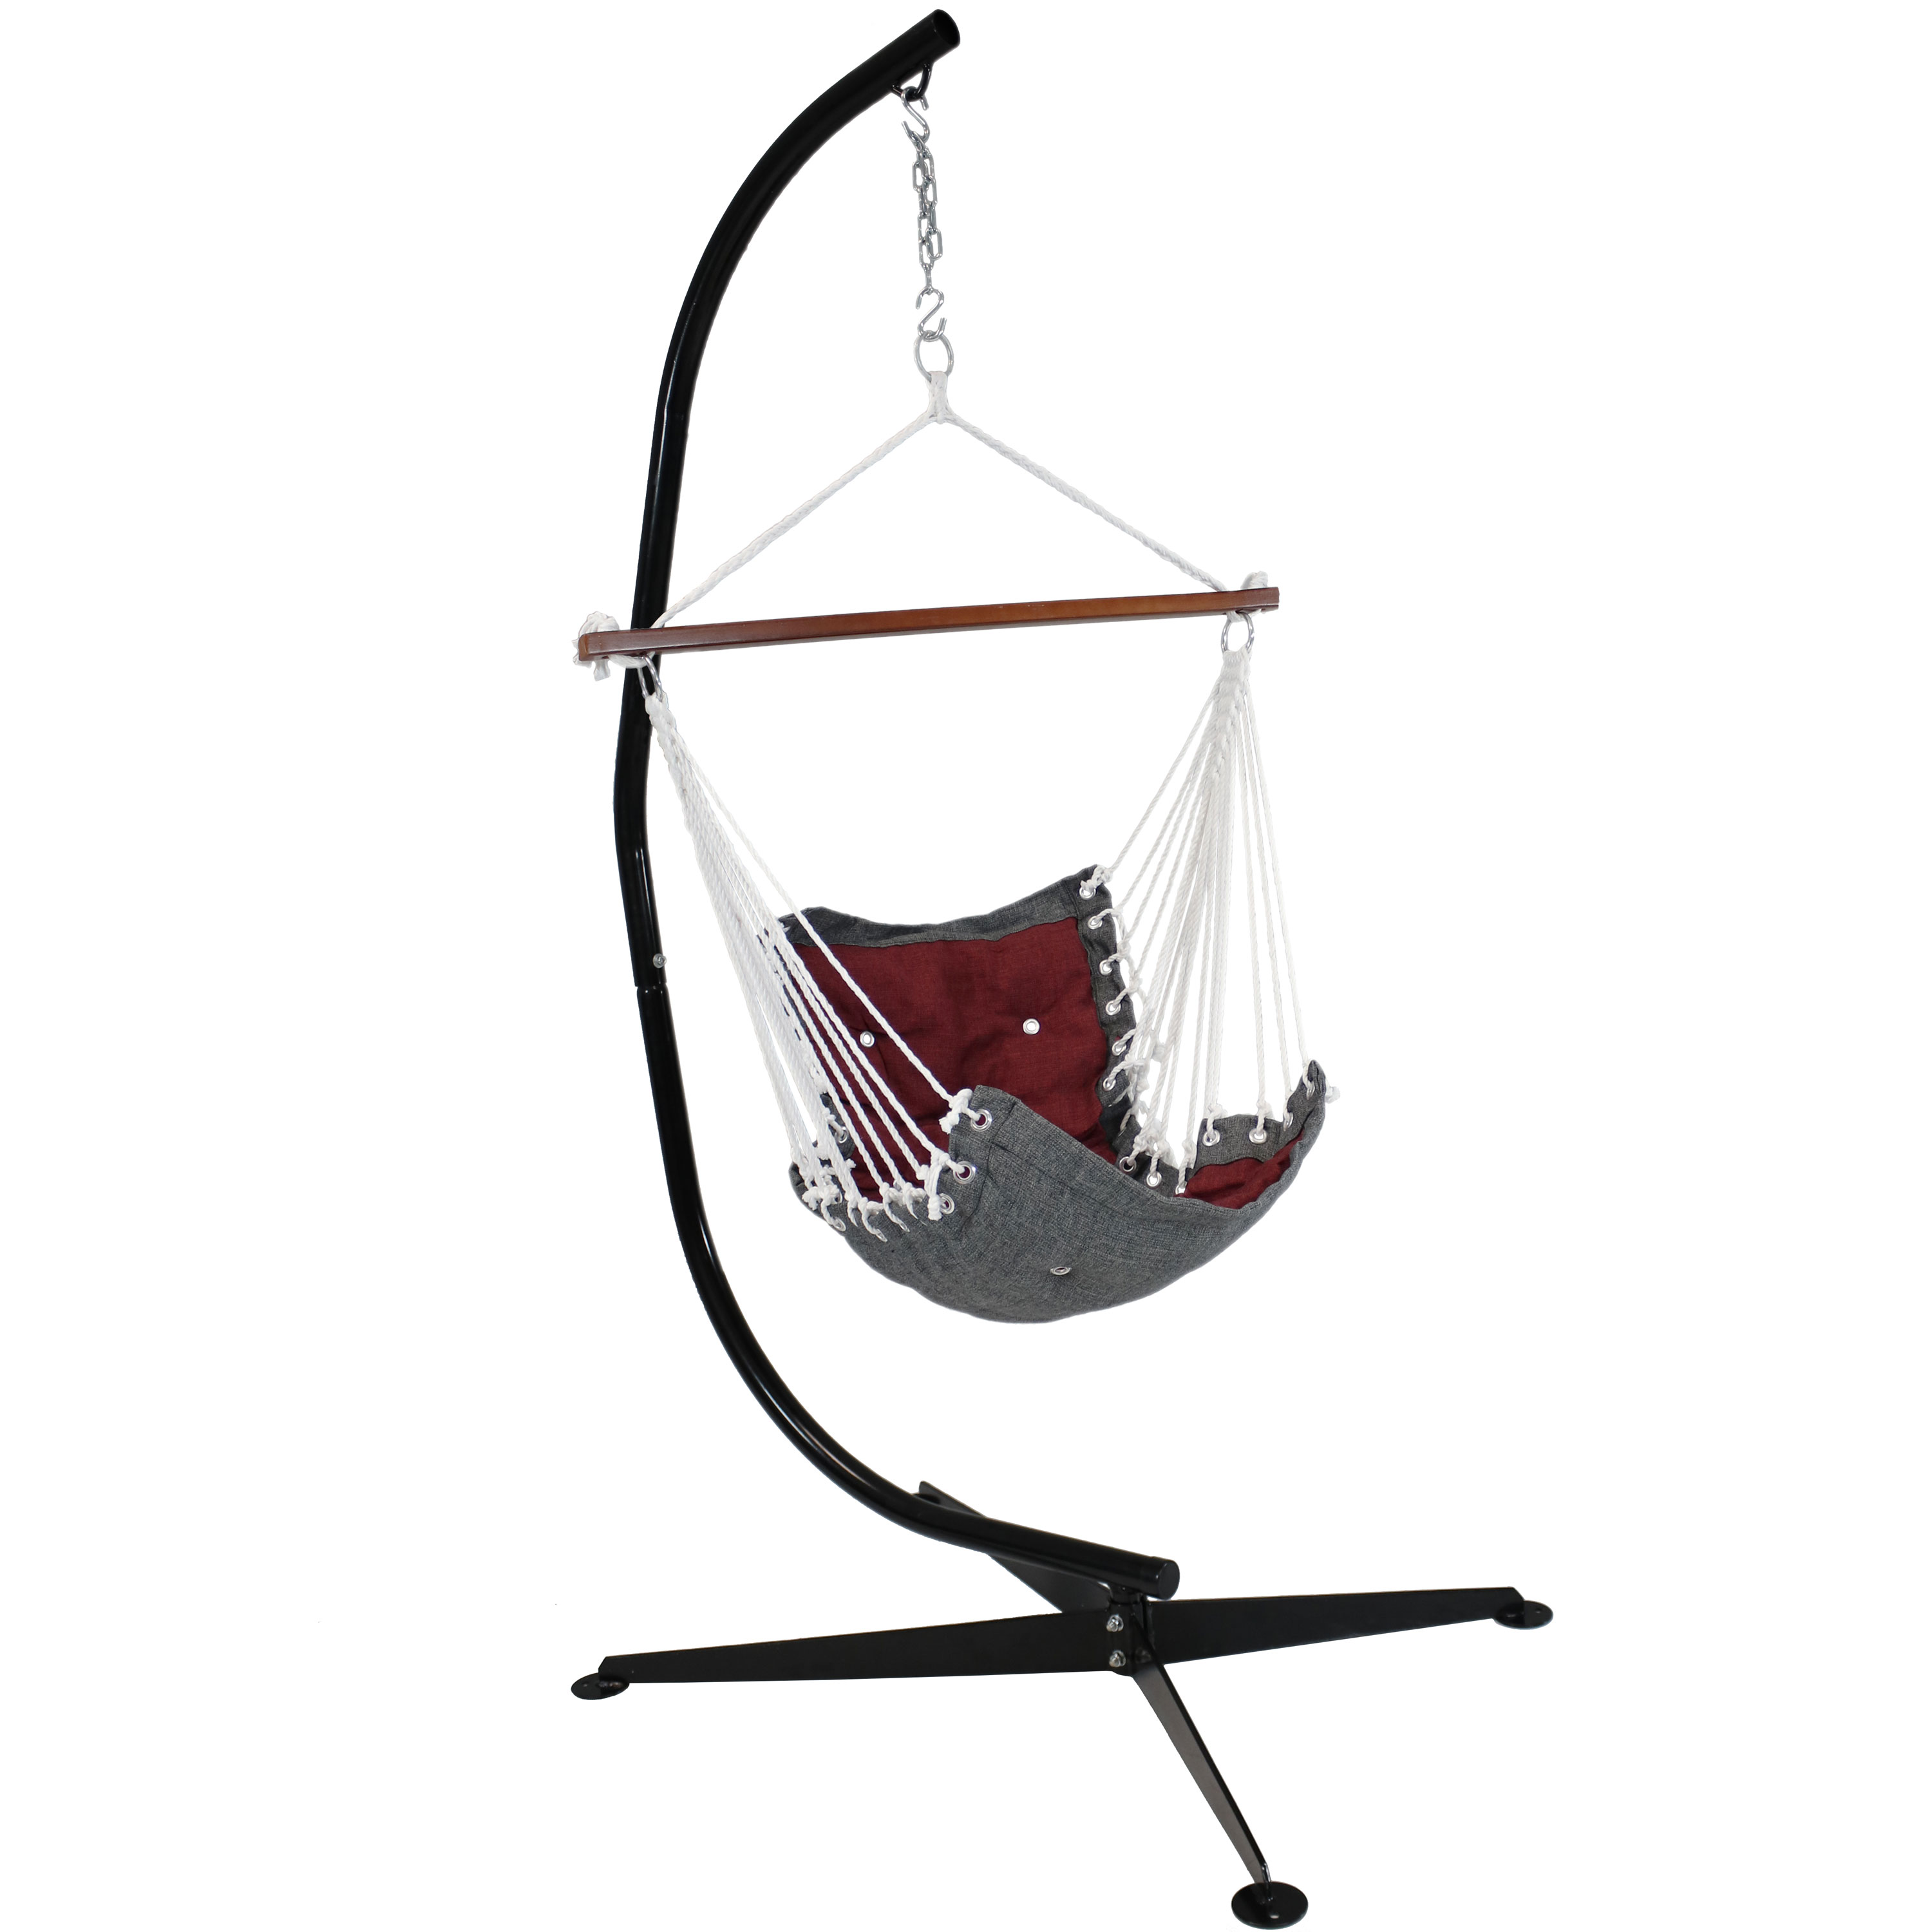 Tufted Victorian Hammock Swing with Stand- Multiple Colors